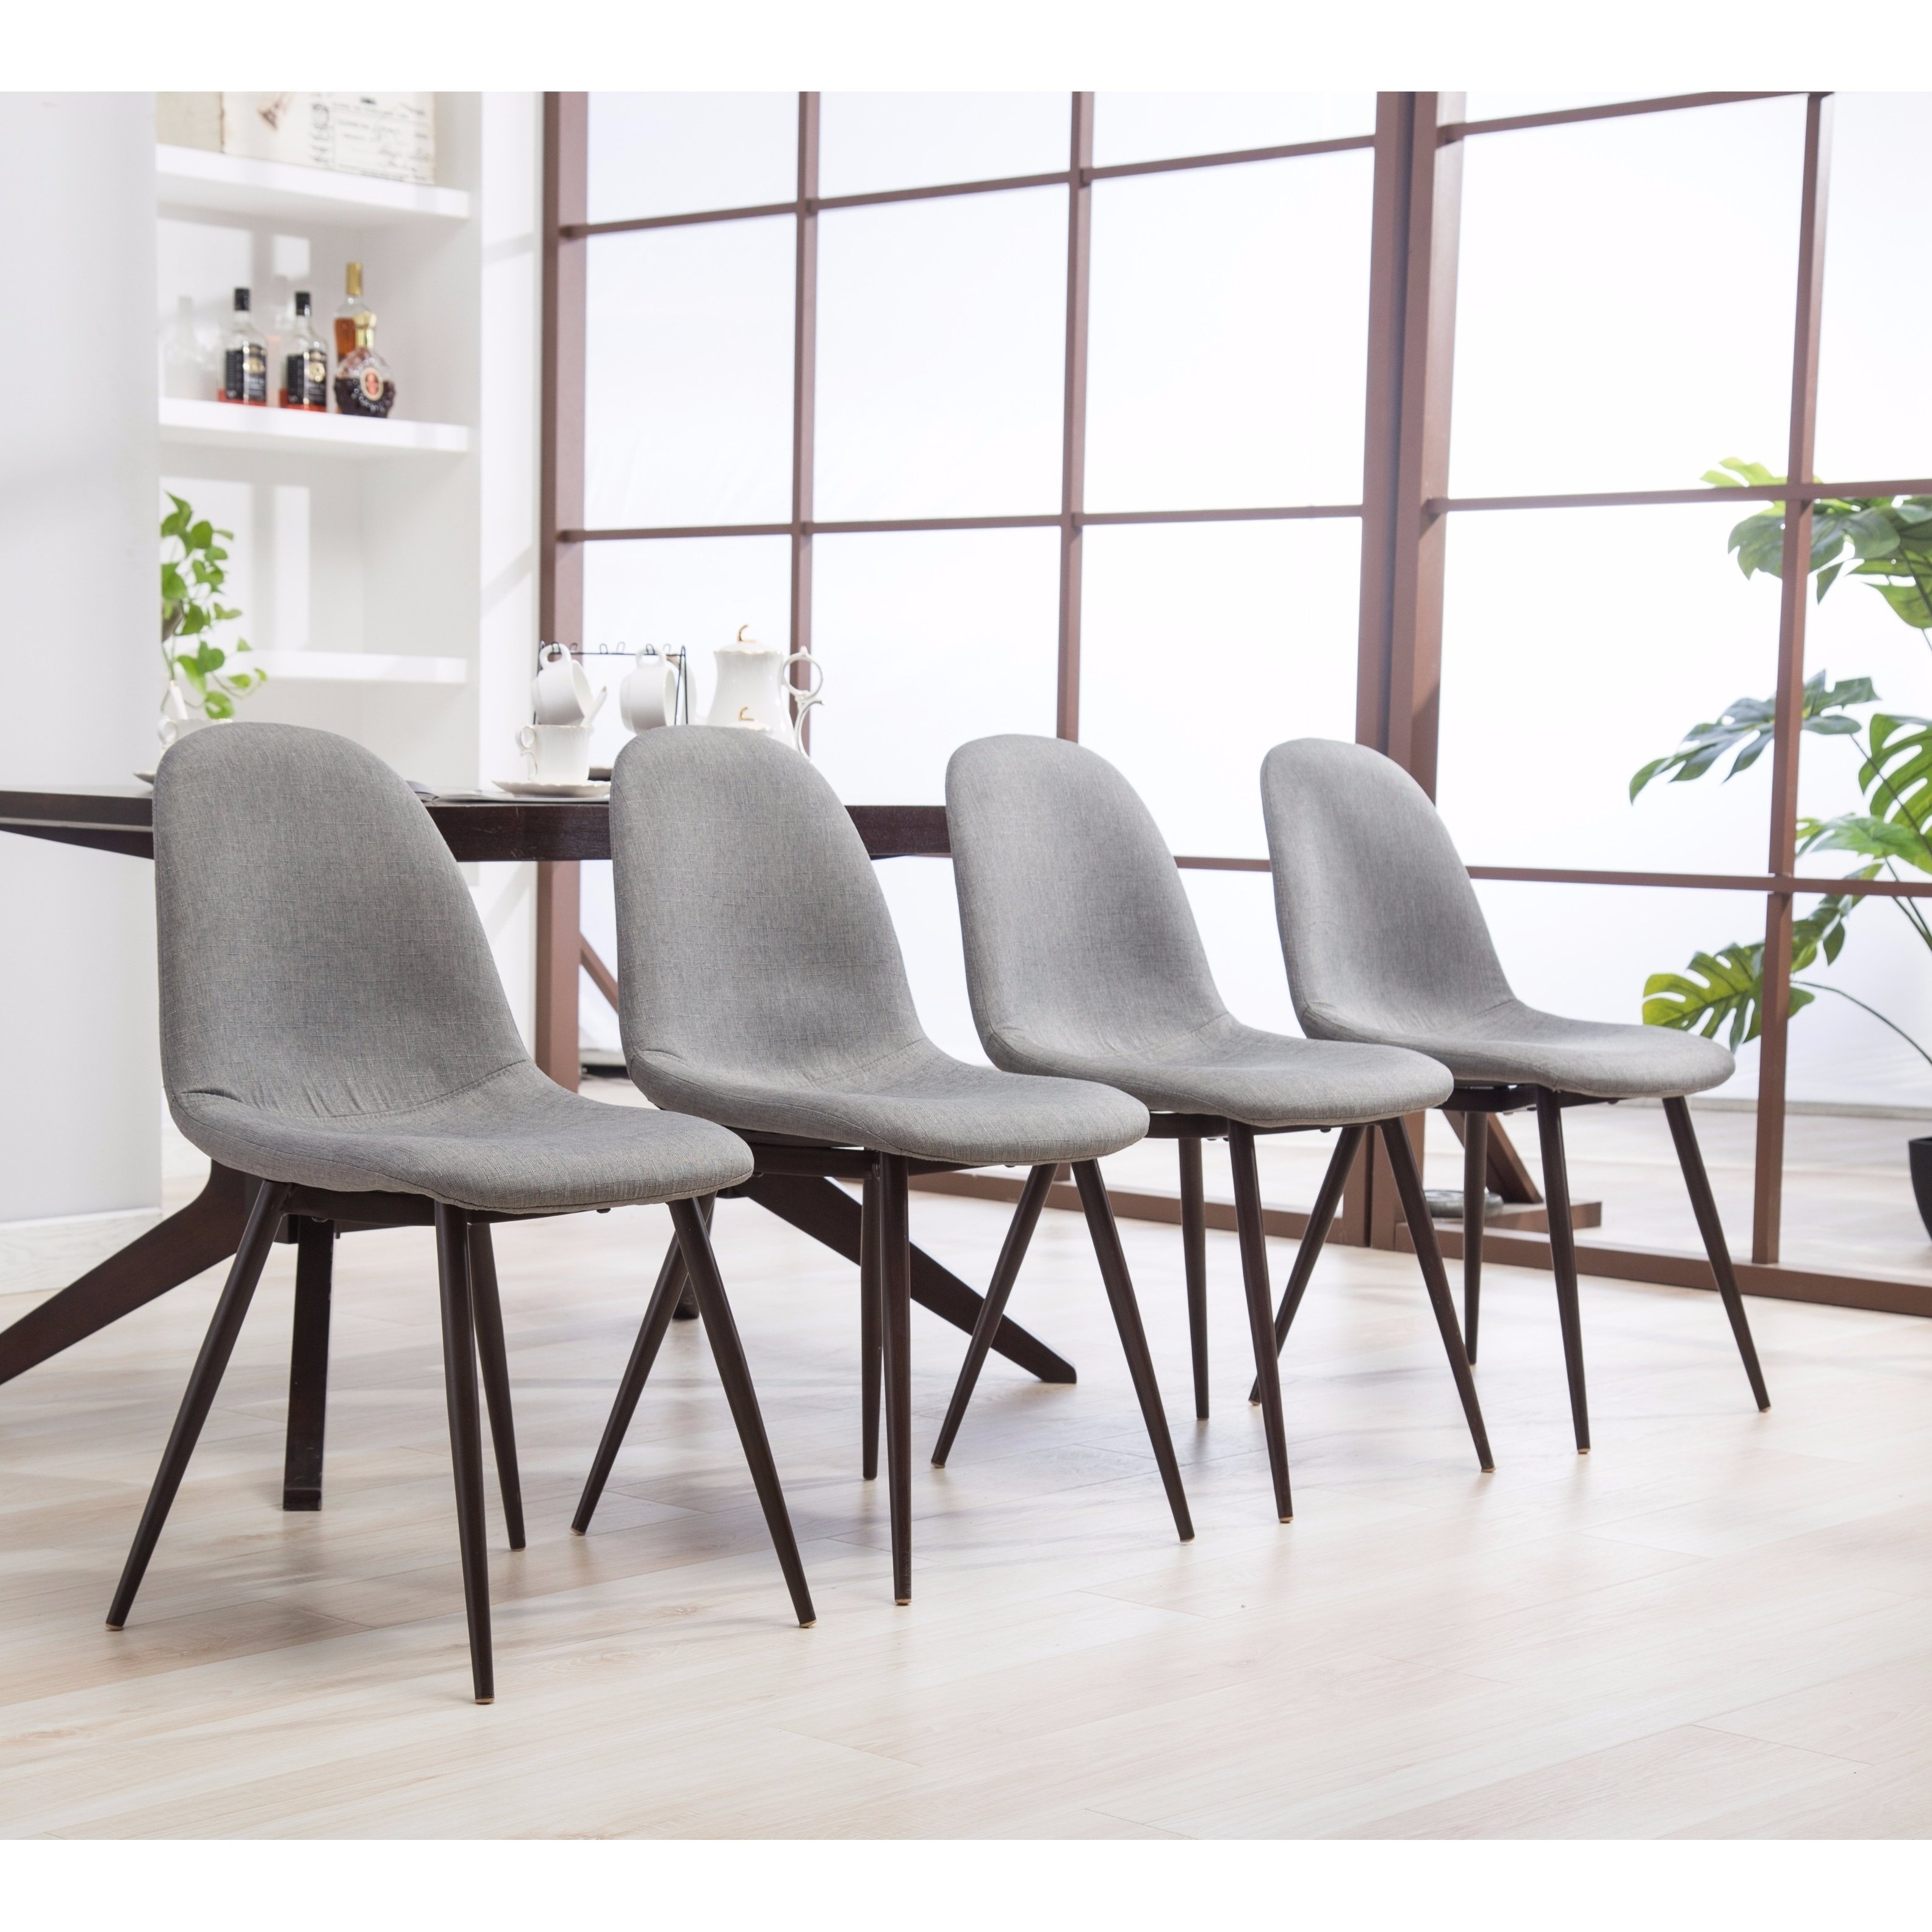 Preferred 25 Ideas Of Caden 6 Piece Dining Sets With Upholstered Side Chair With Pratiksha Sonoma 5 Piece Dining Sets (View 16 of 20)